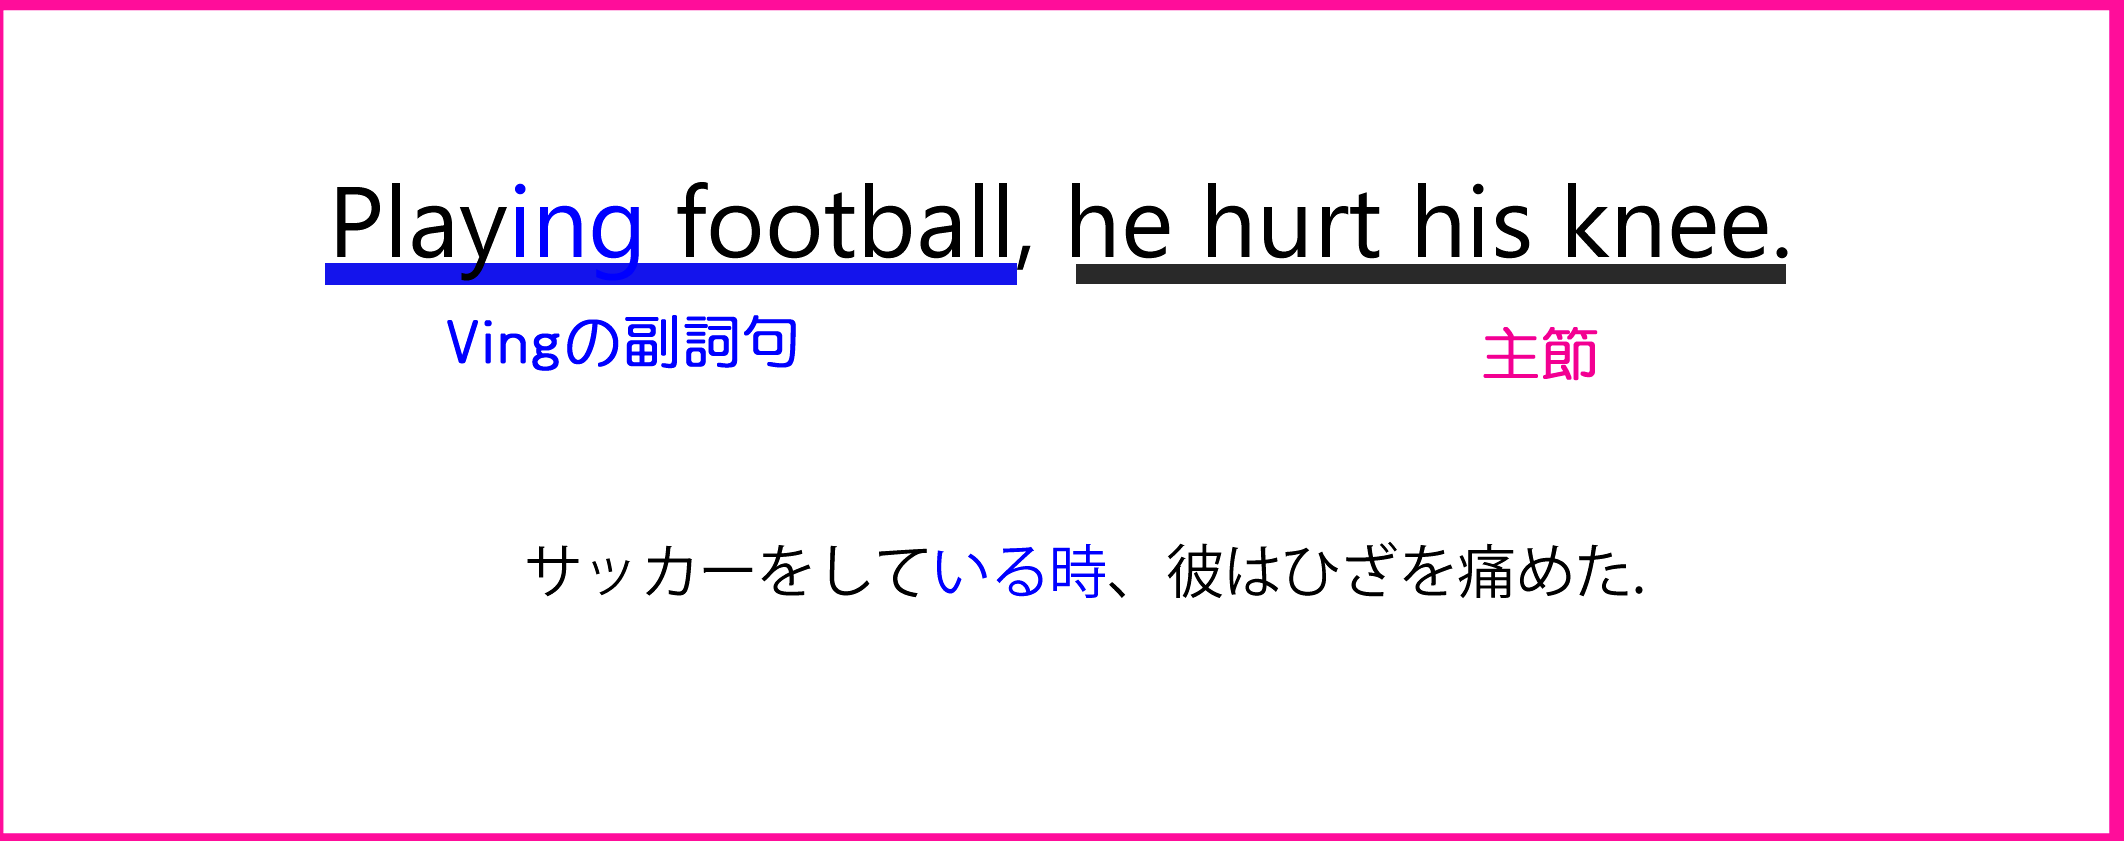 Playing football,he hurt his knee.と分詞構文の図と説明